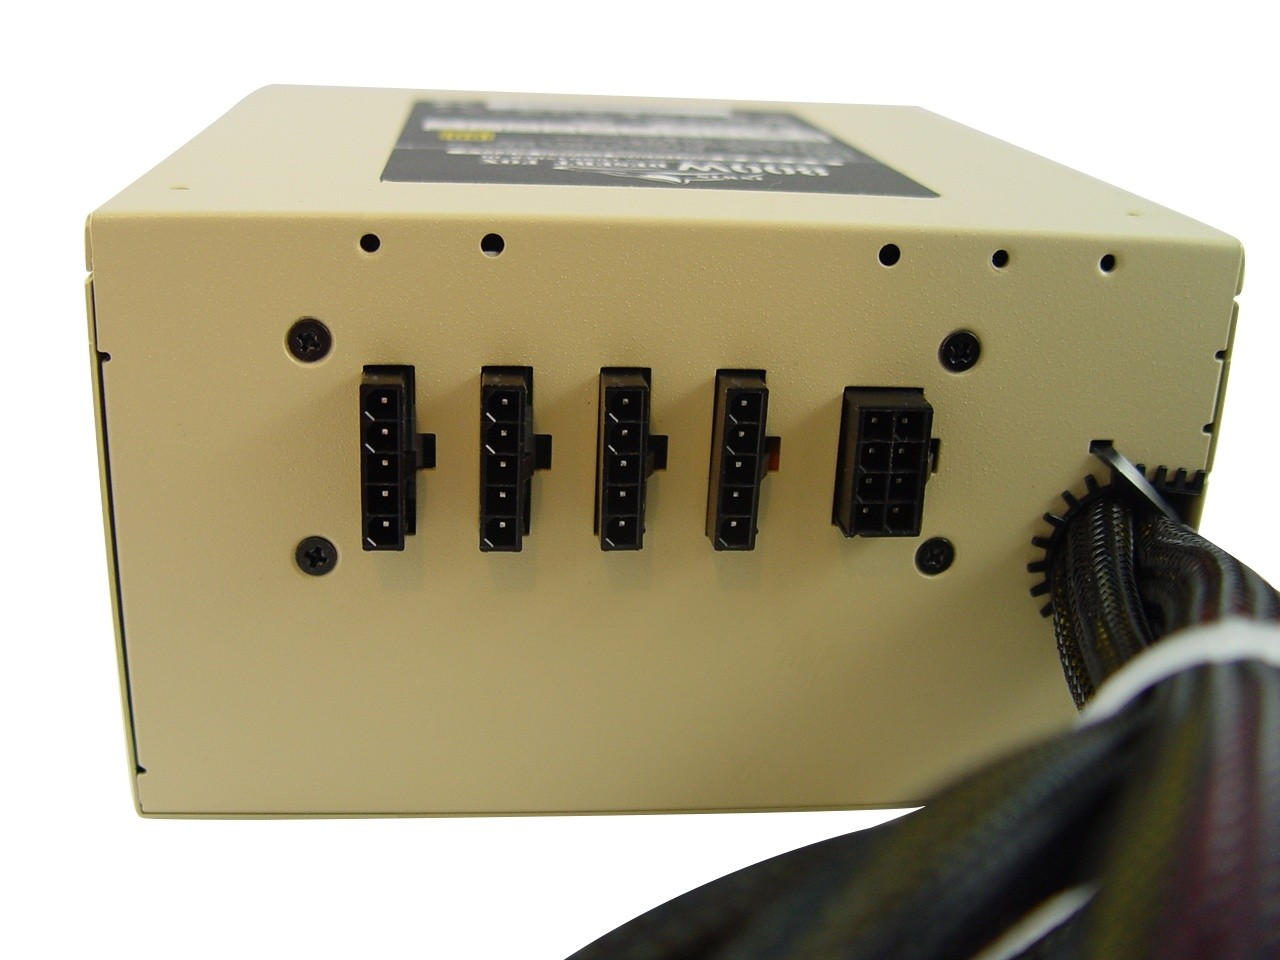 inwin_commander_iii_800w_80_plus_gold_power_supply_review